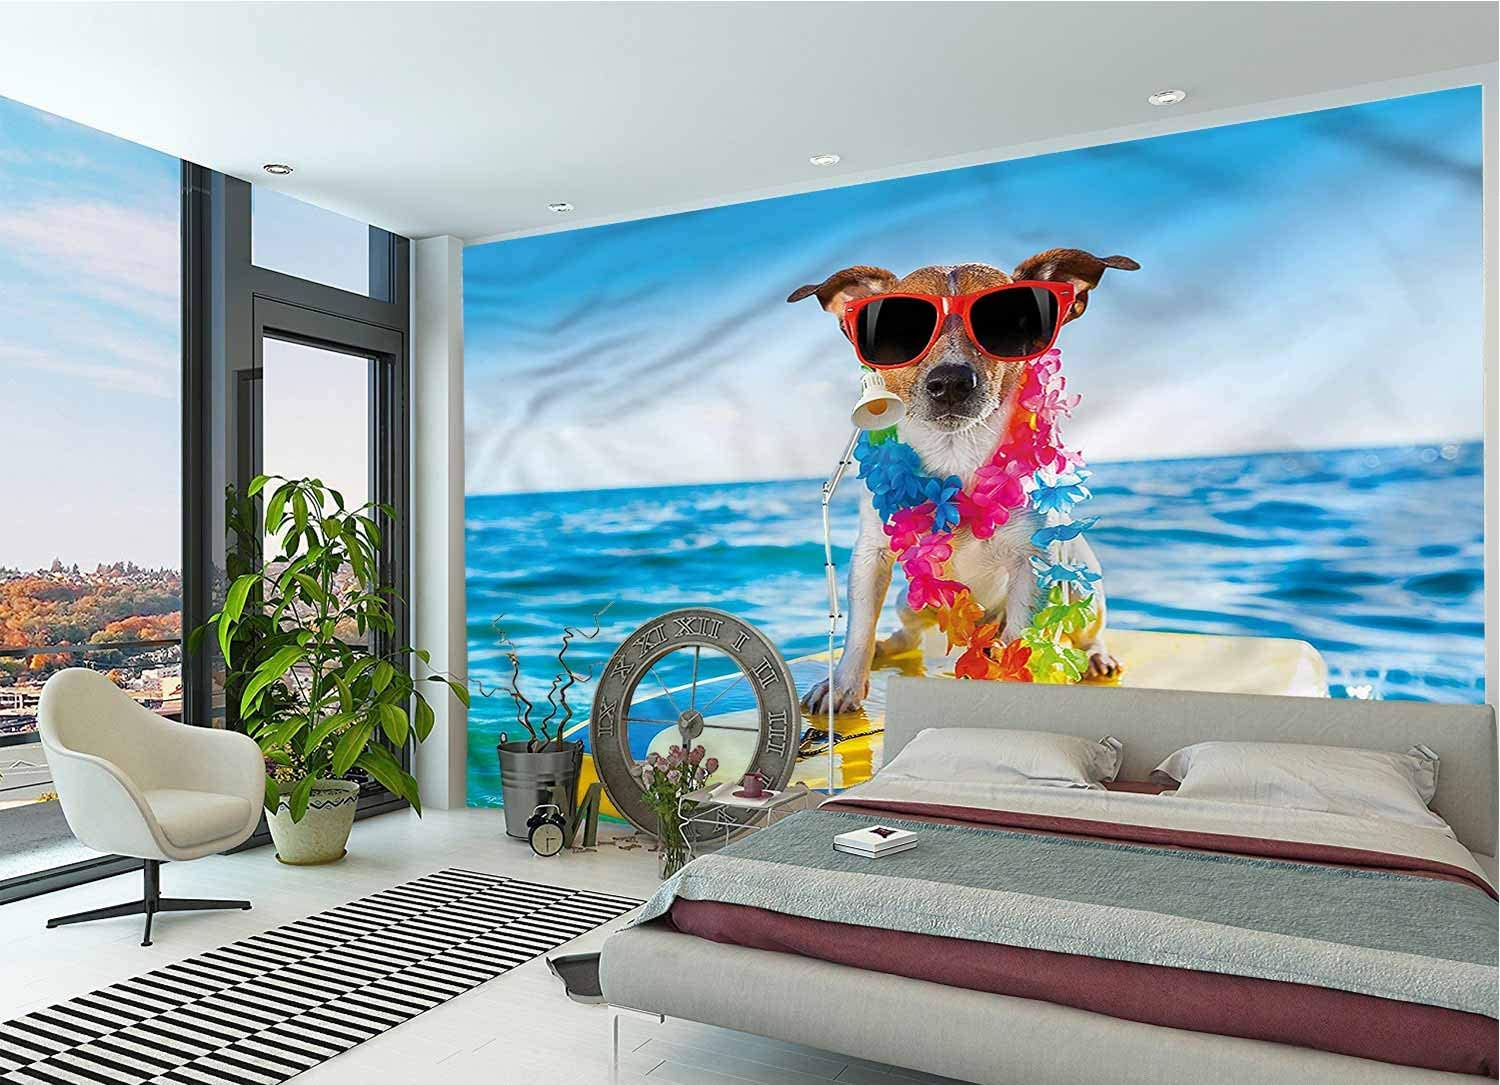 LCGGDB Ride The Wave Large Wall Mural,Dog in The Ocean Removable Large Sticker Foil Wall Decor for Office Kids Bedroom Nursery Family Decor-144x100 Inch